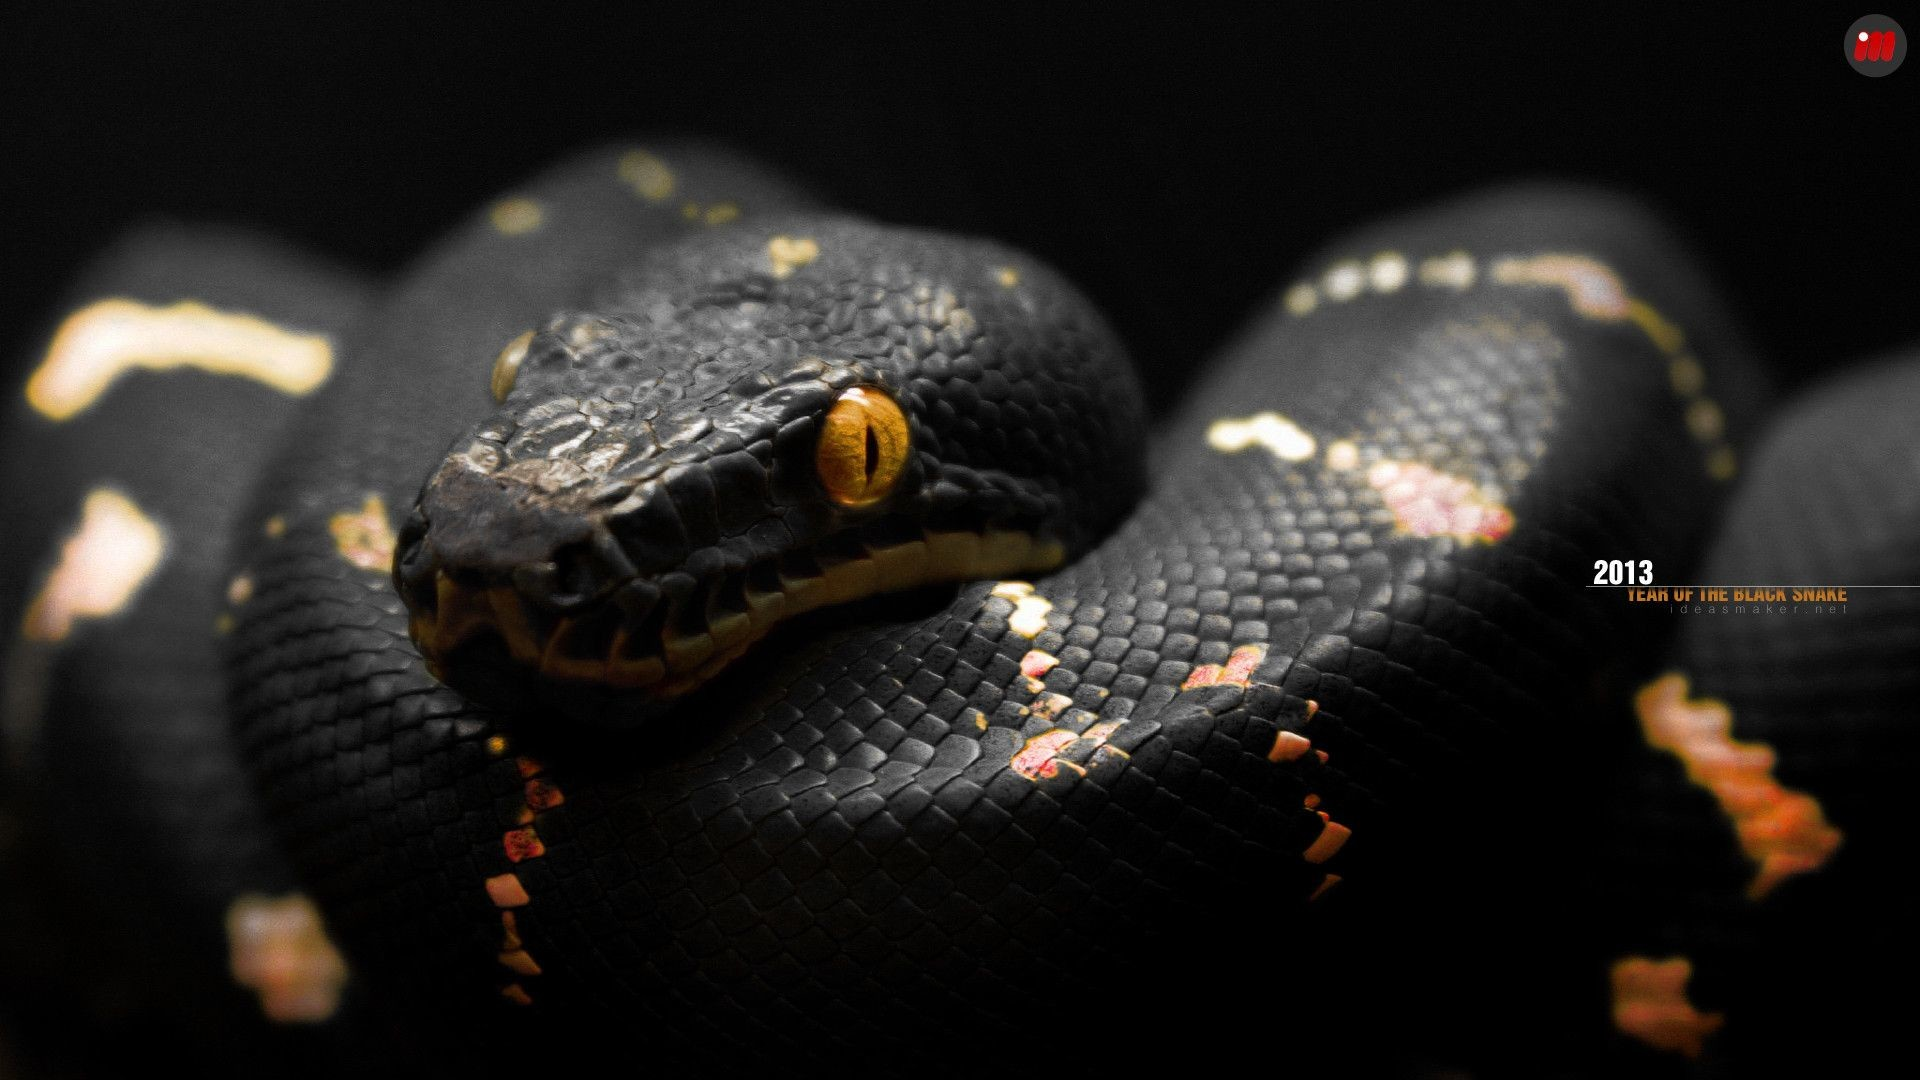 Res: 1920x1080, Snake HD Wallpapers Backgrounds Wallpaper 1600×1000 Black Snake .